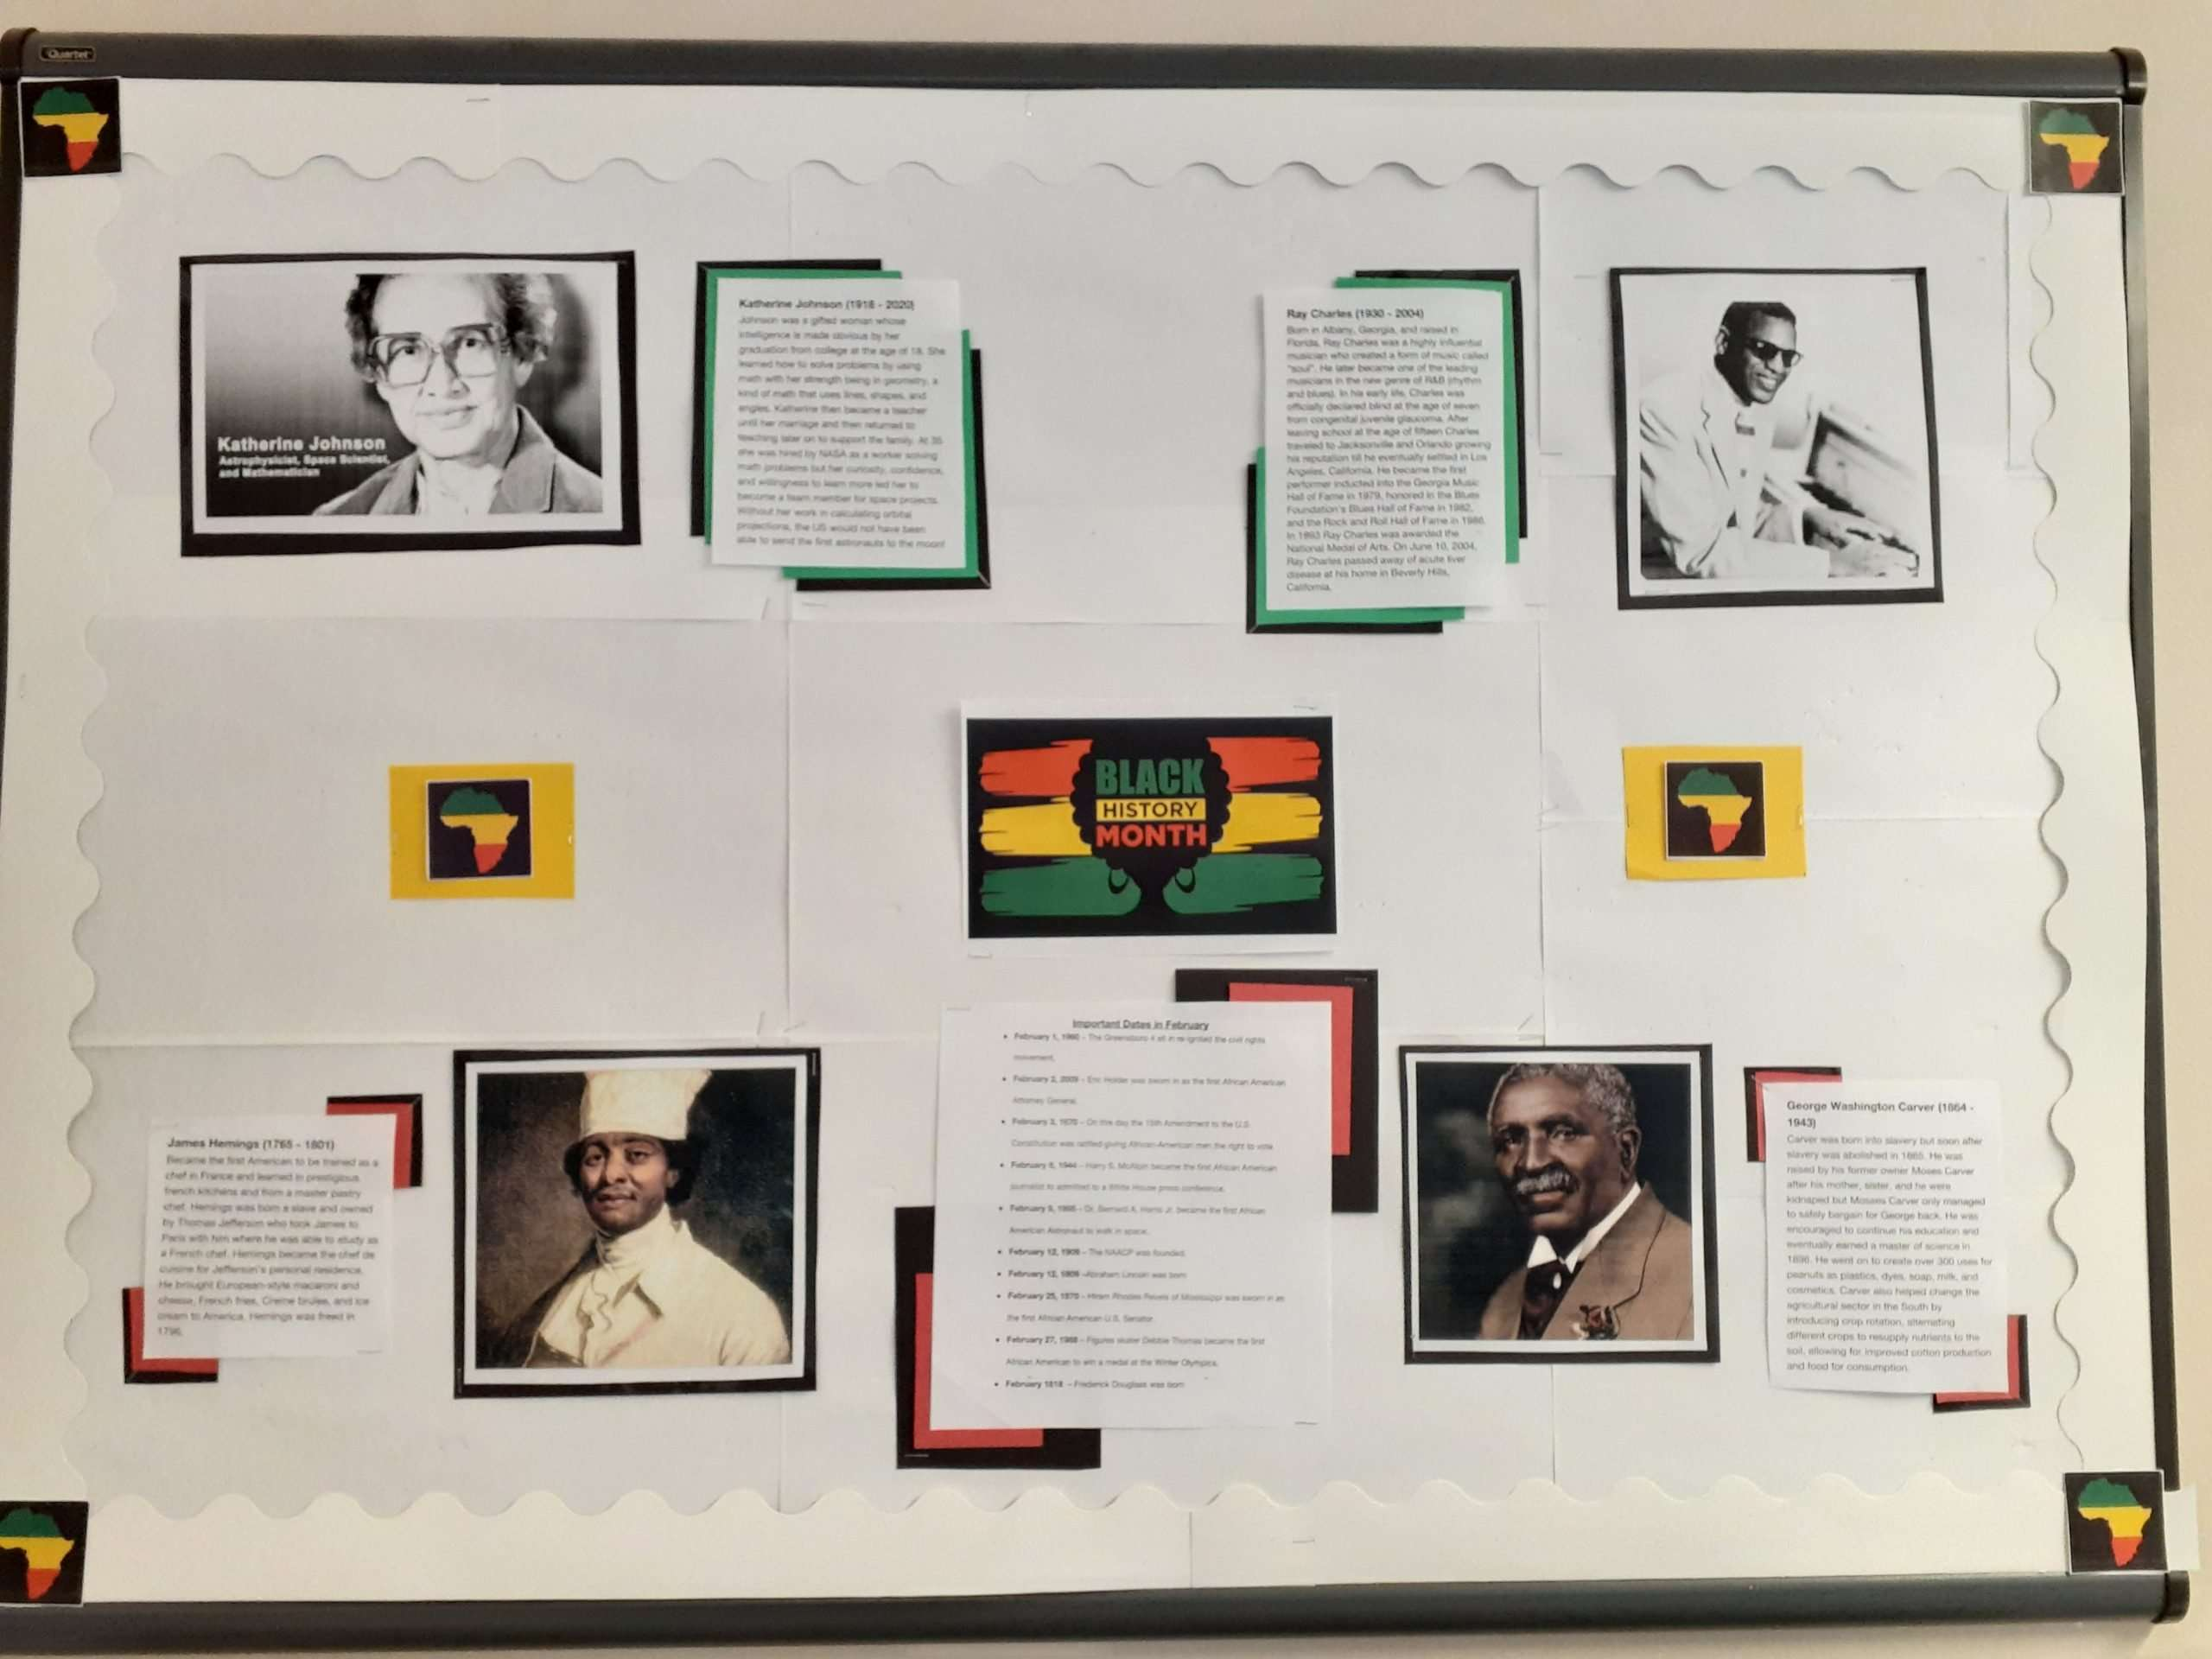 A community bulletin board for Black History Month, featuring four Black historical figures who are not often talked about